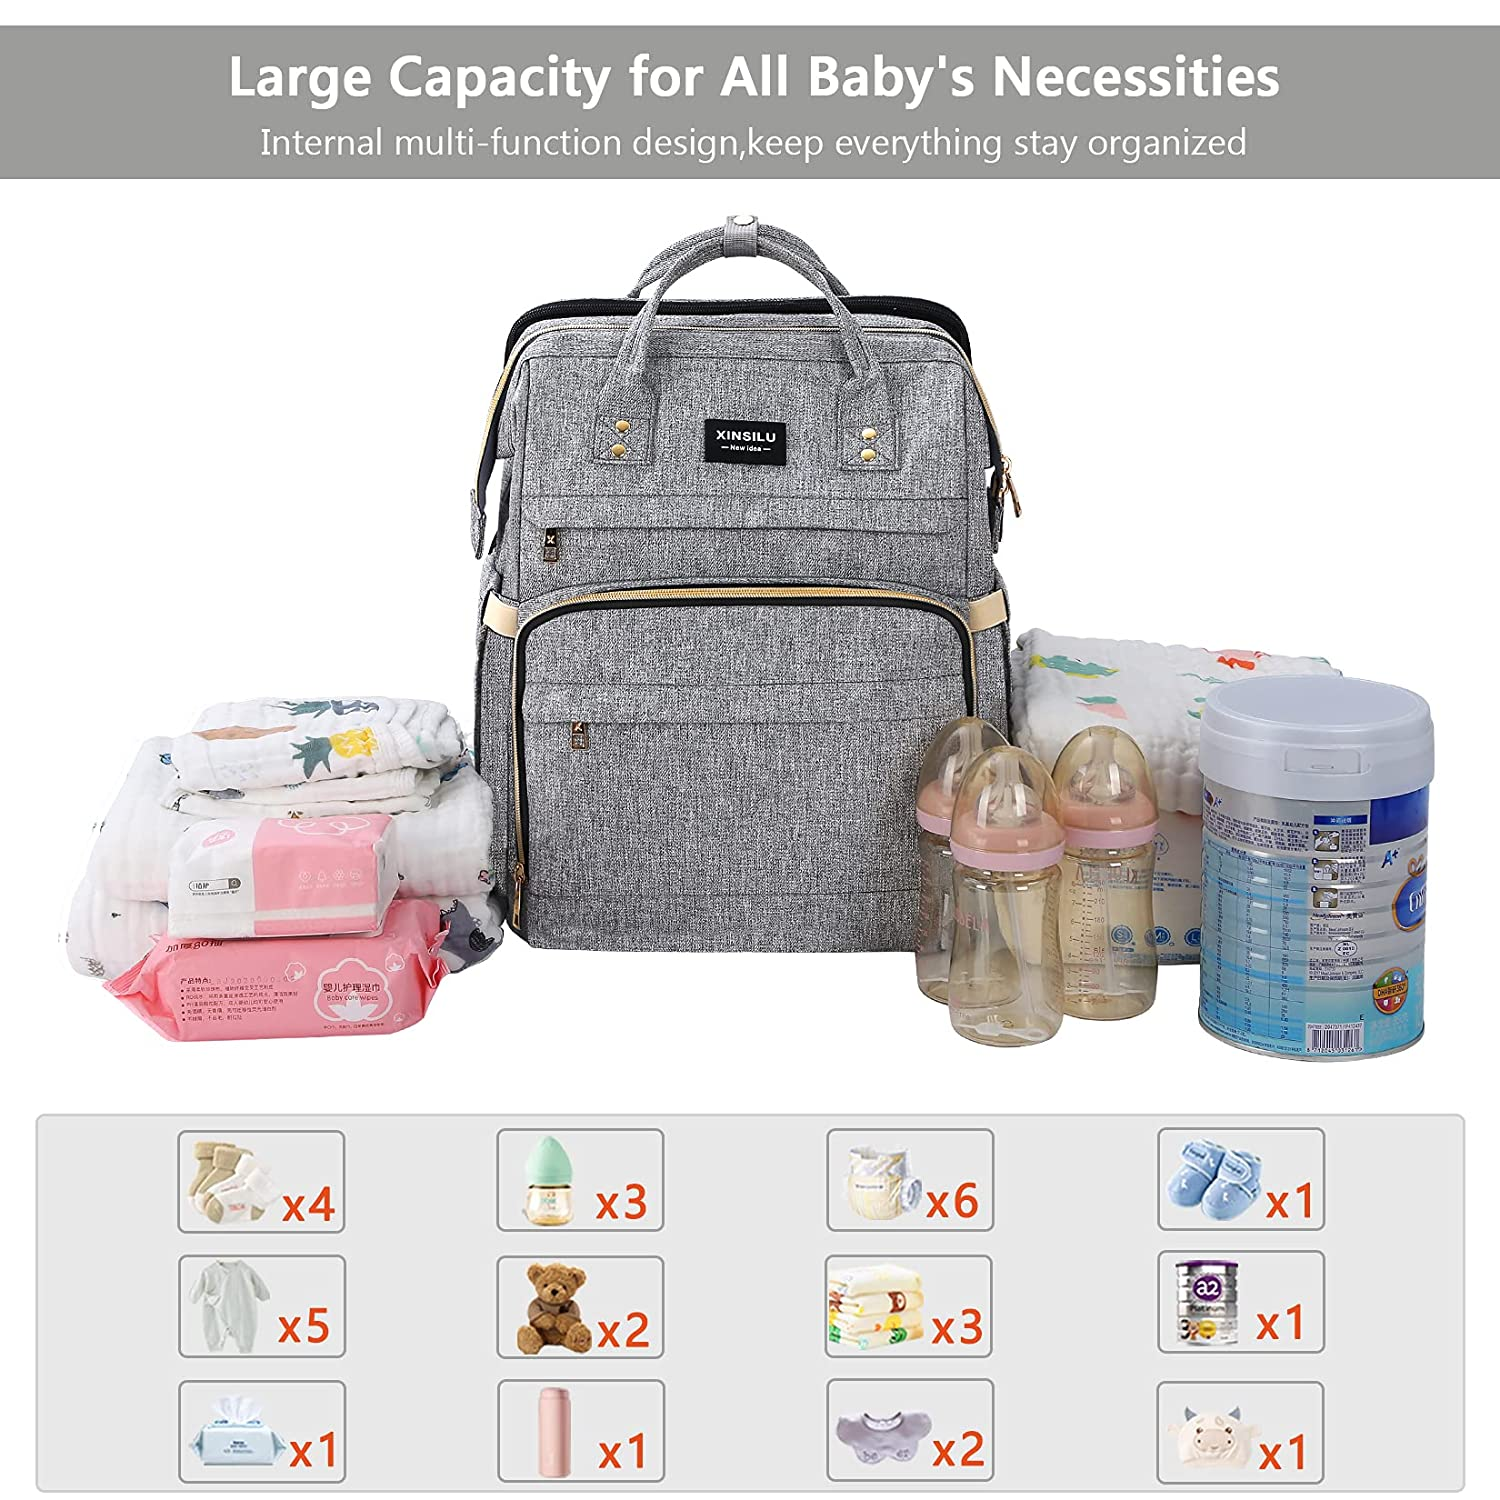 Xinsilu All in 1 Diaper Bag Backpack Foldable Baby Bed, Diaper Changing Station with USB Charging Port, Waterproof Multi-Functional Girl Boy Travel Baby Diaper Bag, Large Capacity, Gray